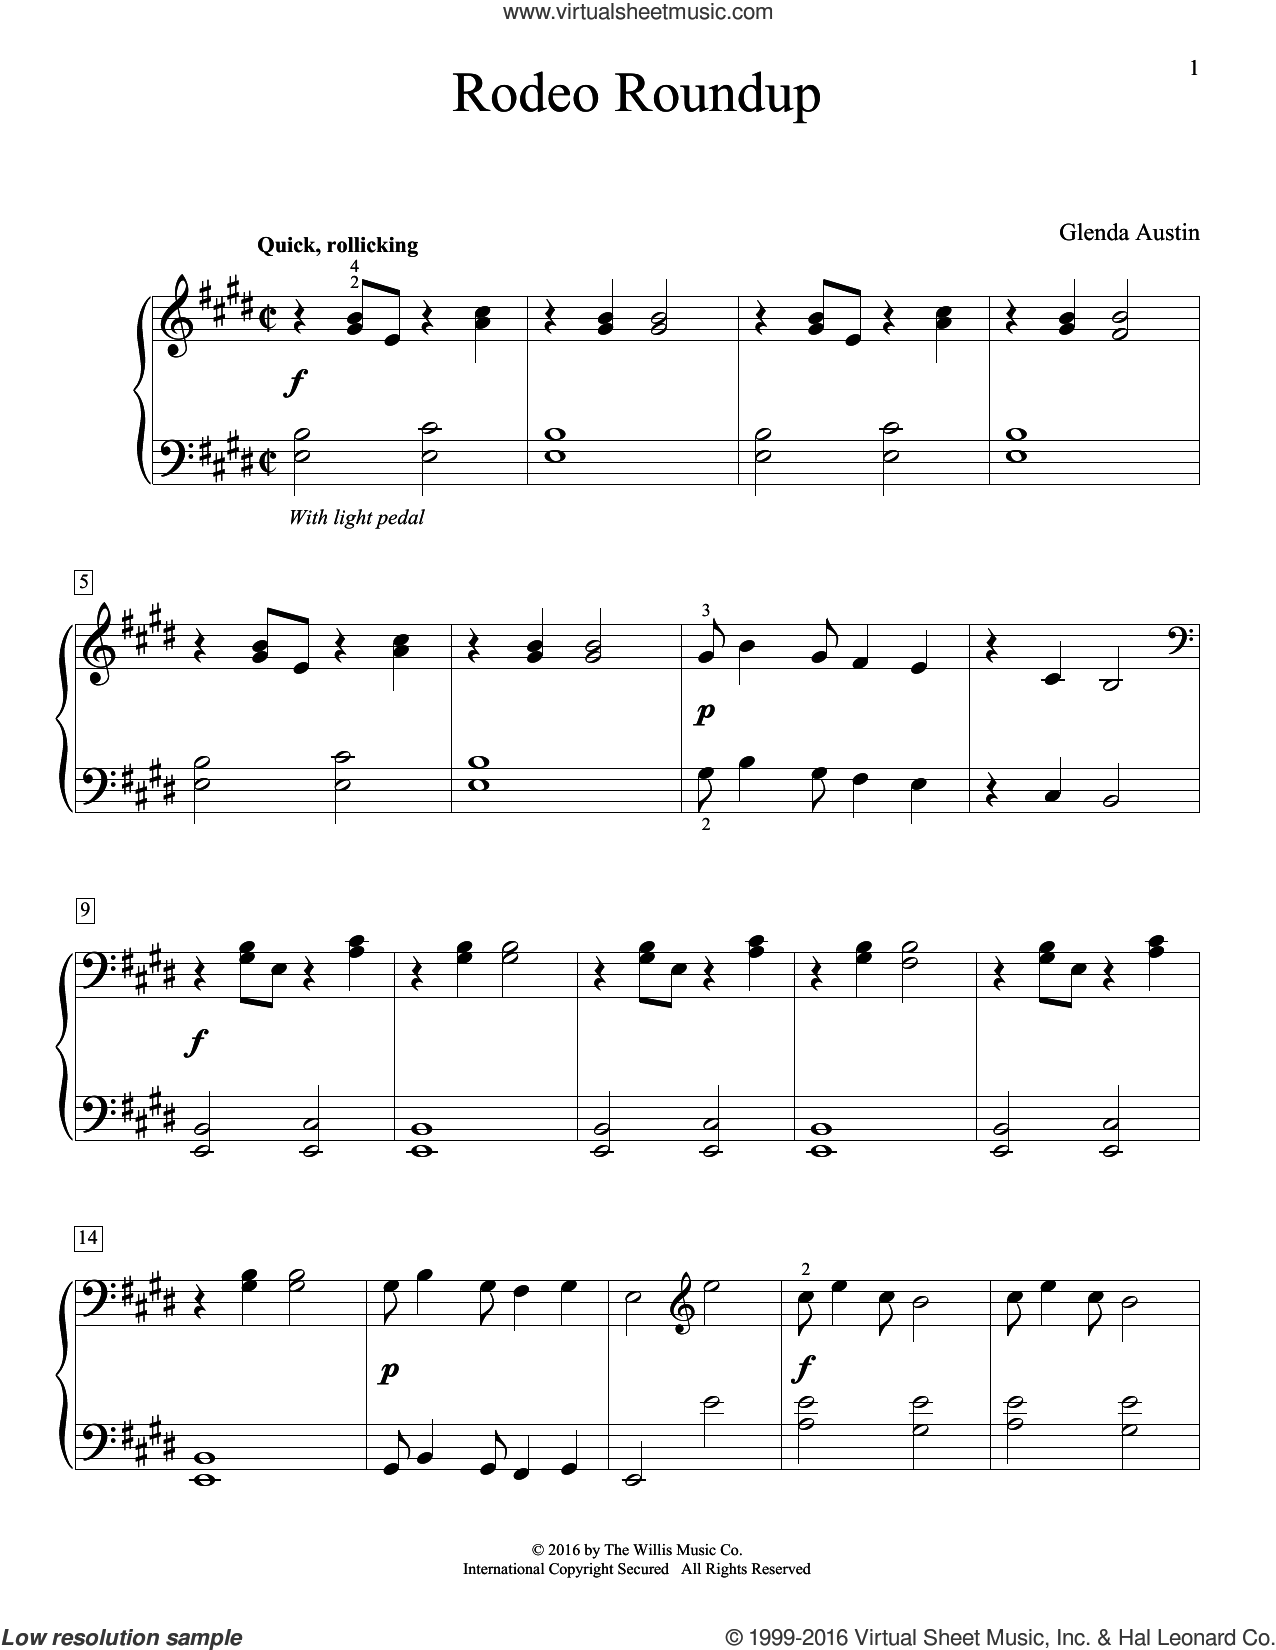 Rodeo Roundup sheet music for piano solo by Glenda Austin, intermediate. Score Image Preview.